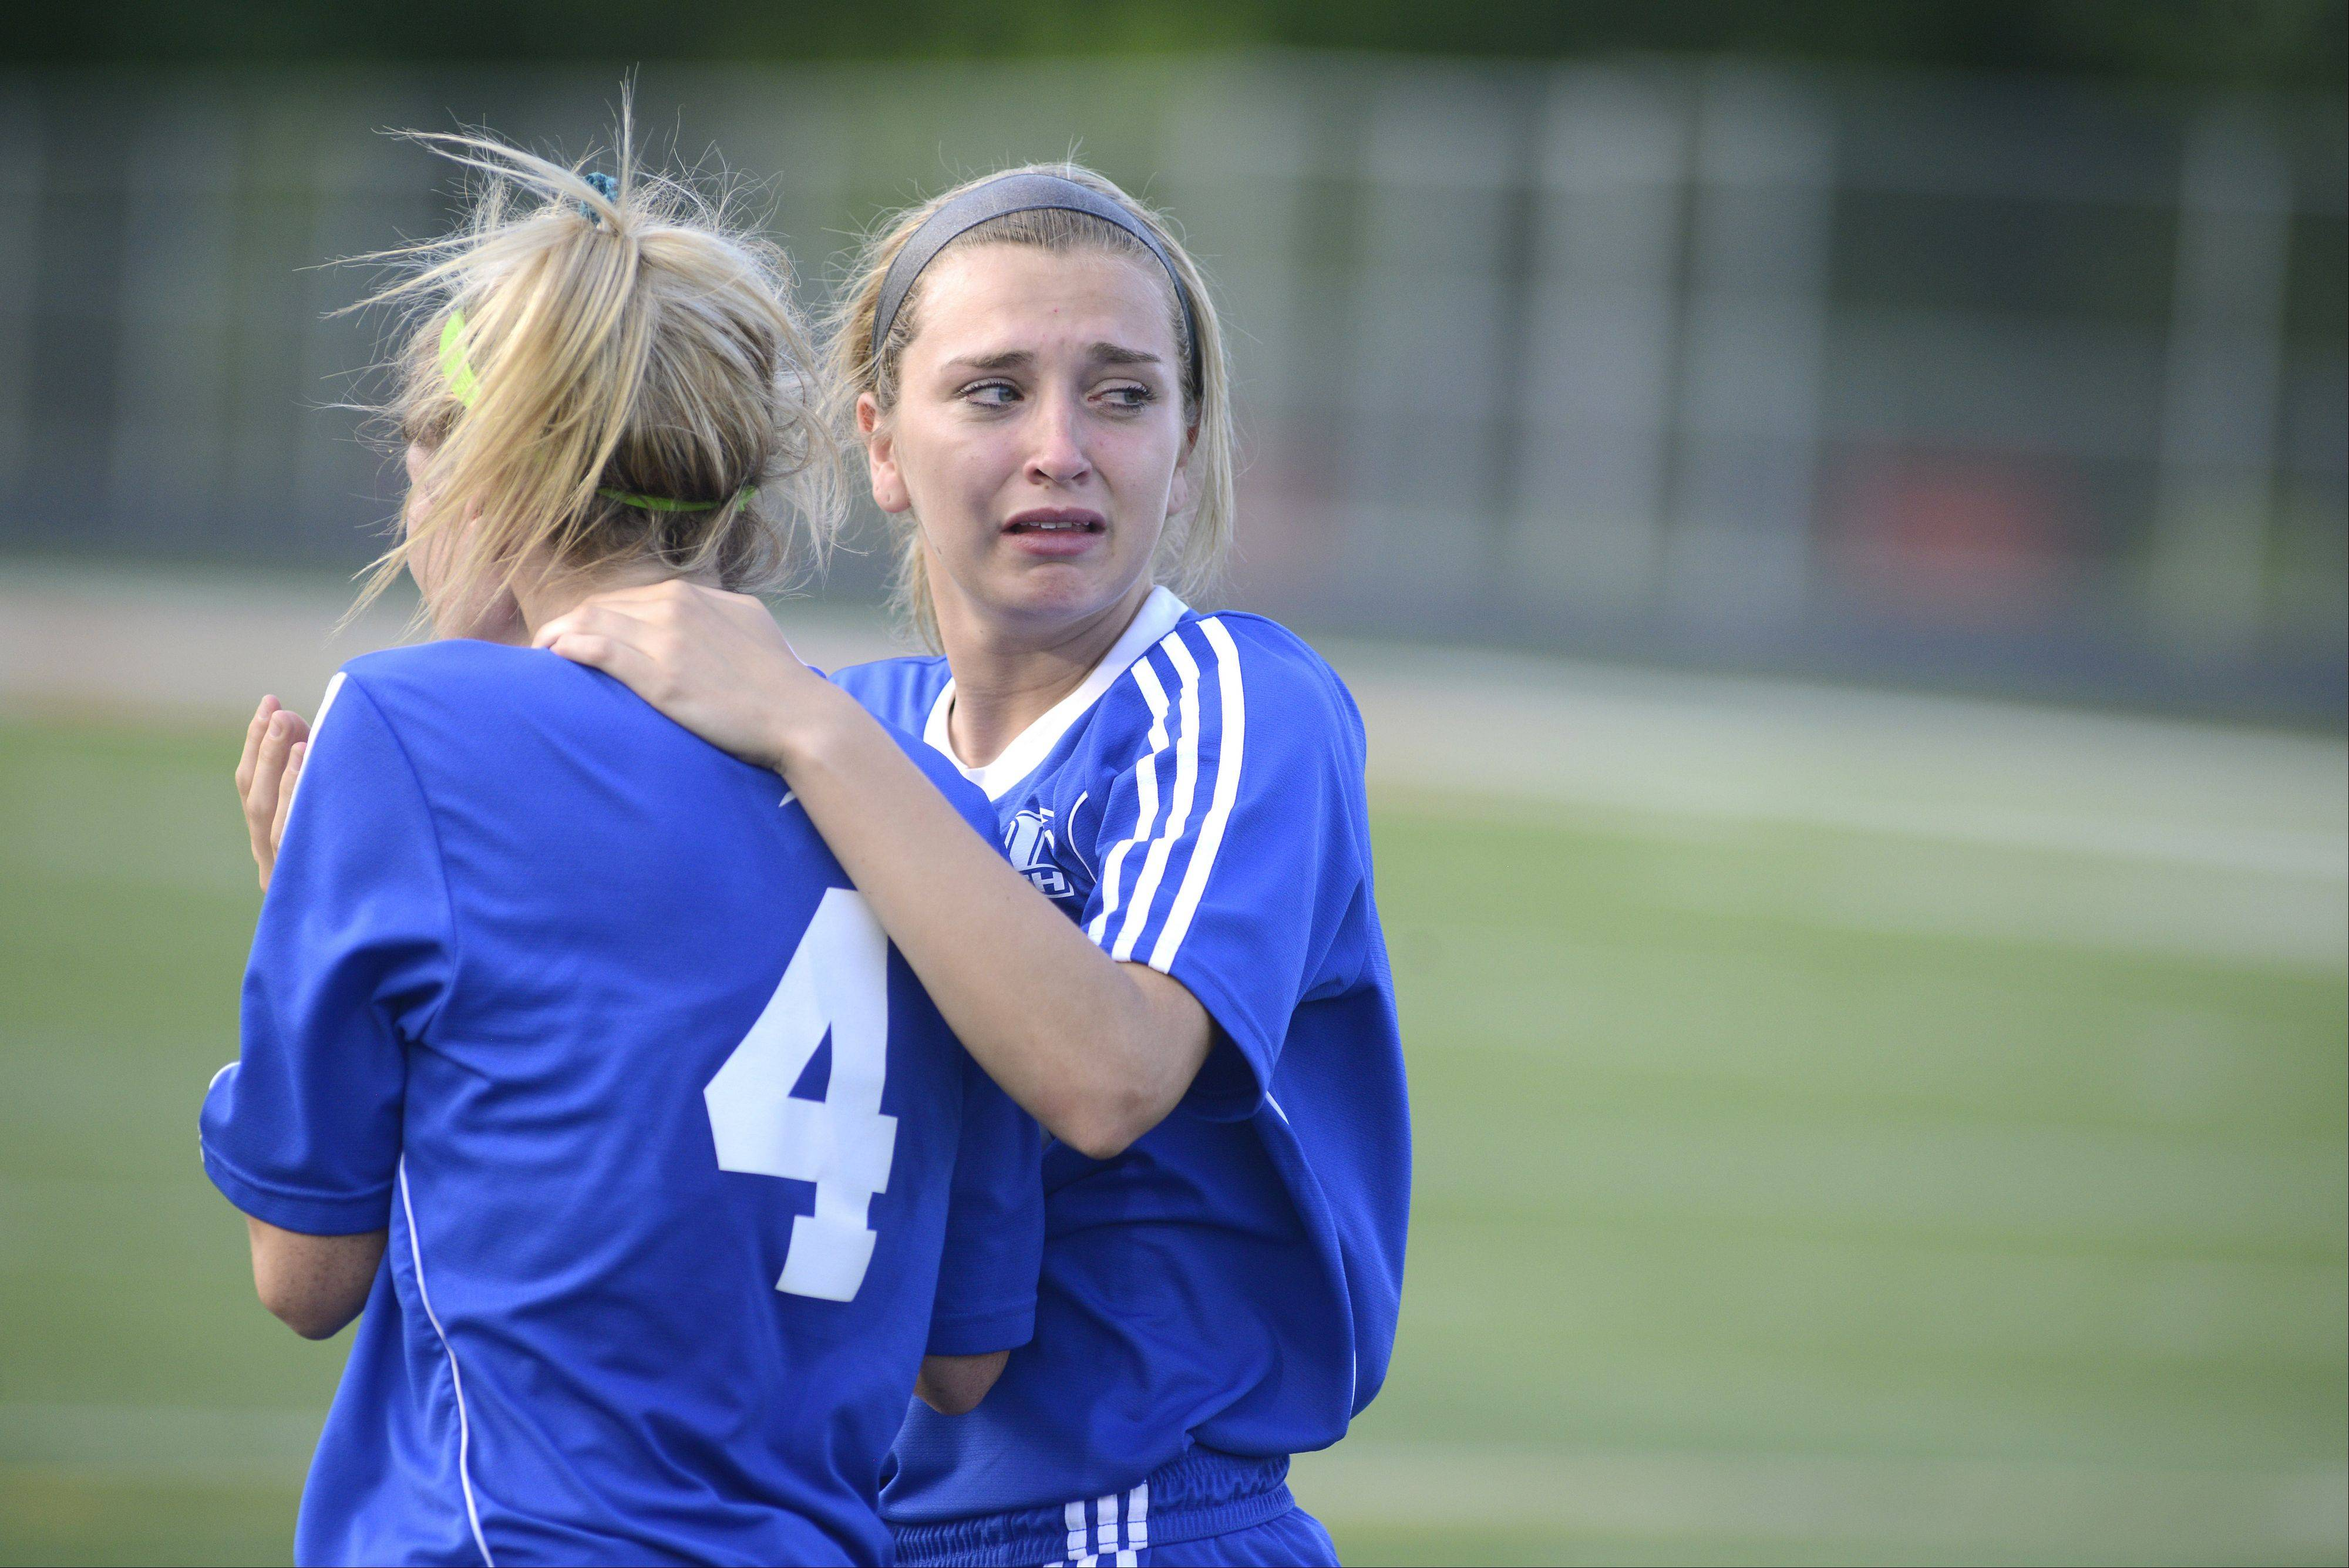 St. Charles North's Darcy Stoecklin looks back to her grieving teammates as she comforts Jenny Barr after their Class 3A supersectional loss to Barrington on Wednesday.